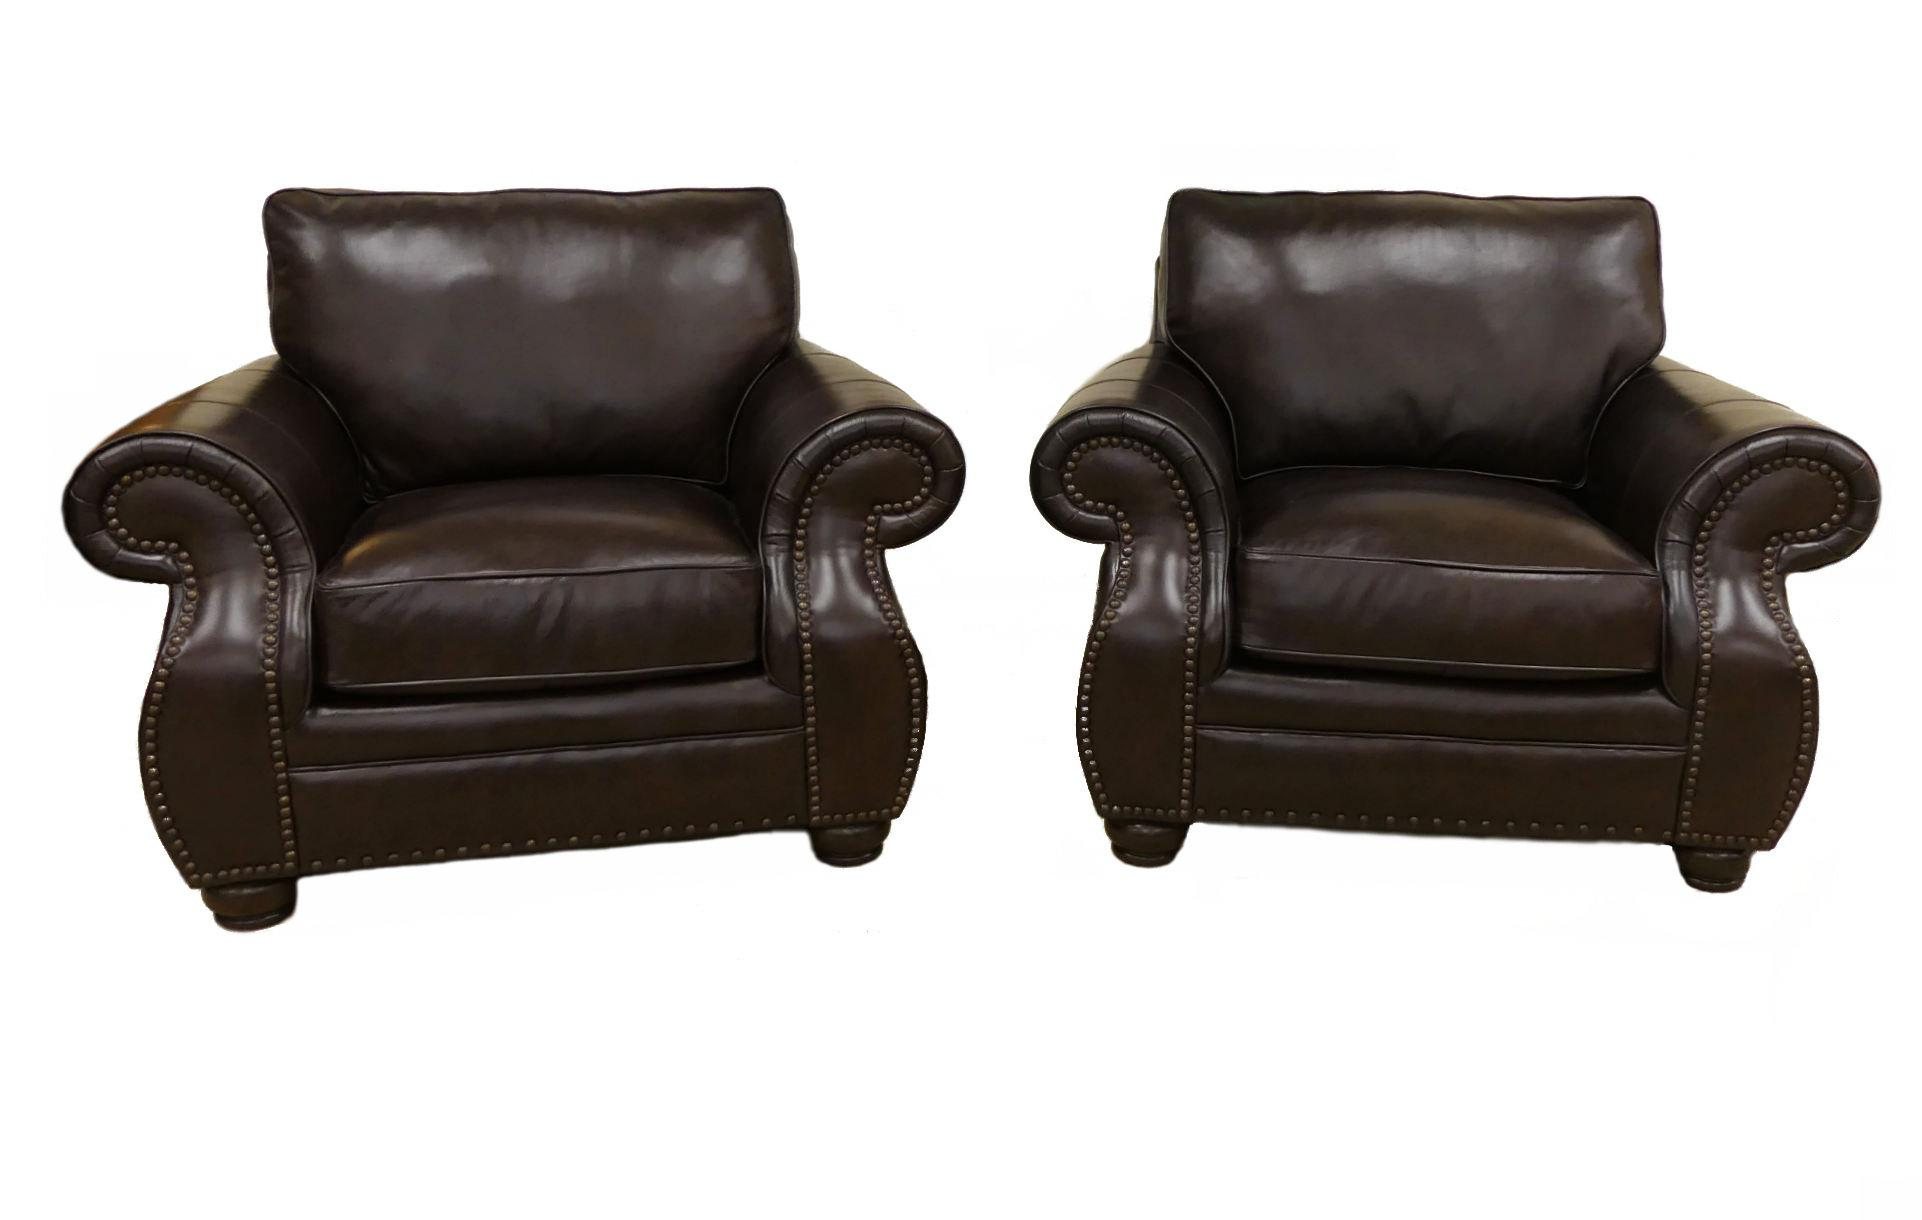 bernhardt brown leather club chair papasan cushion outdoor furniture genuine classic chairs a pair for sale image 11 of